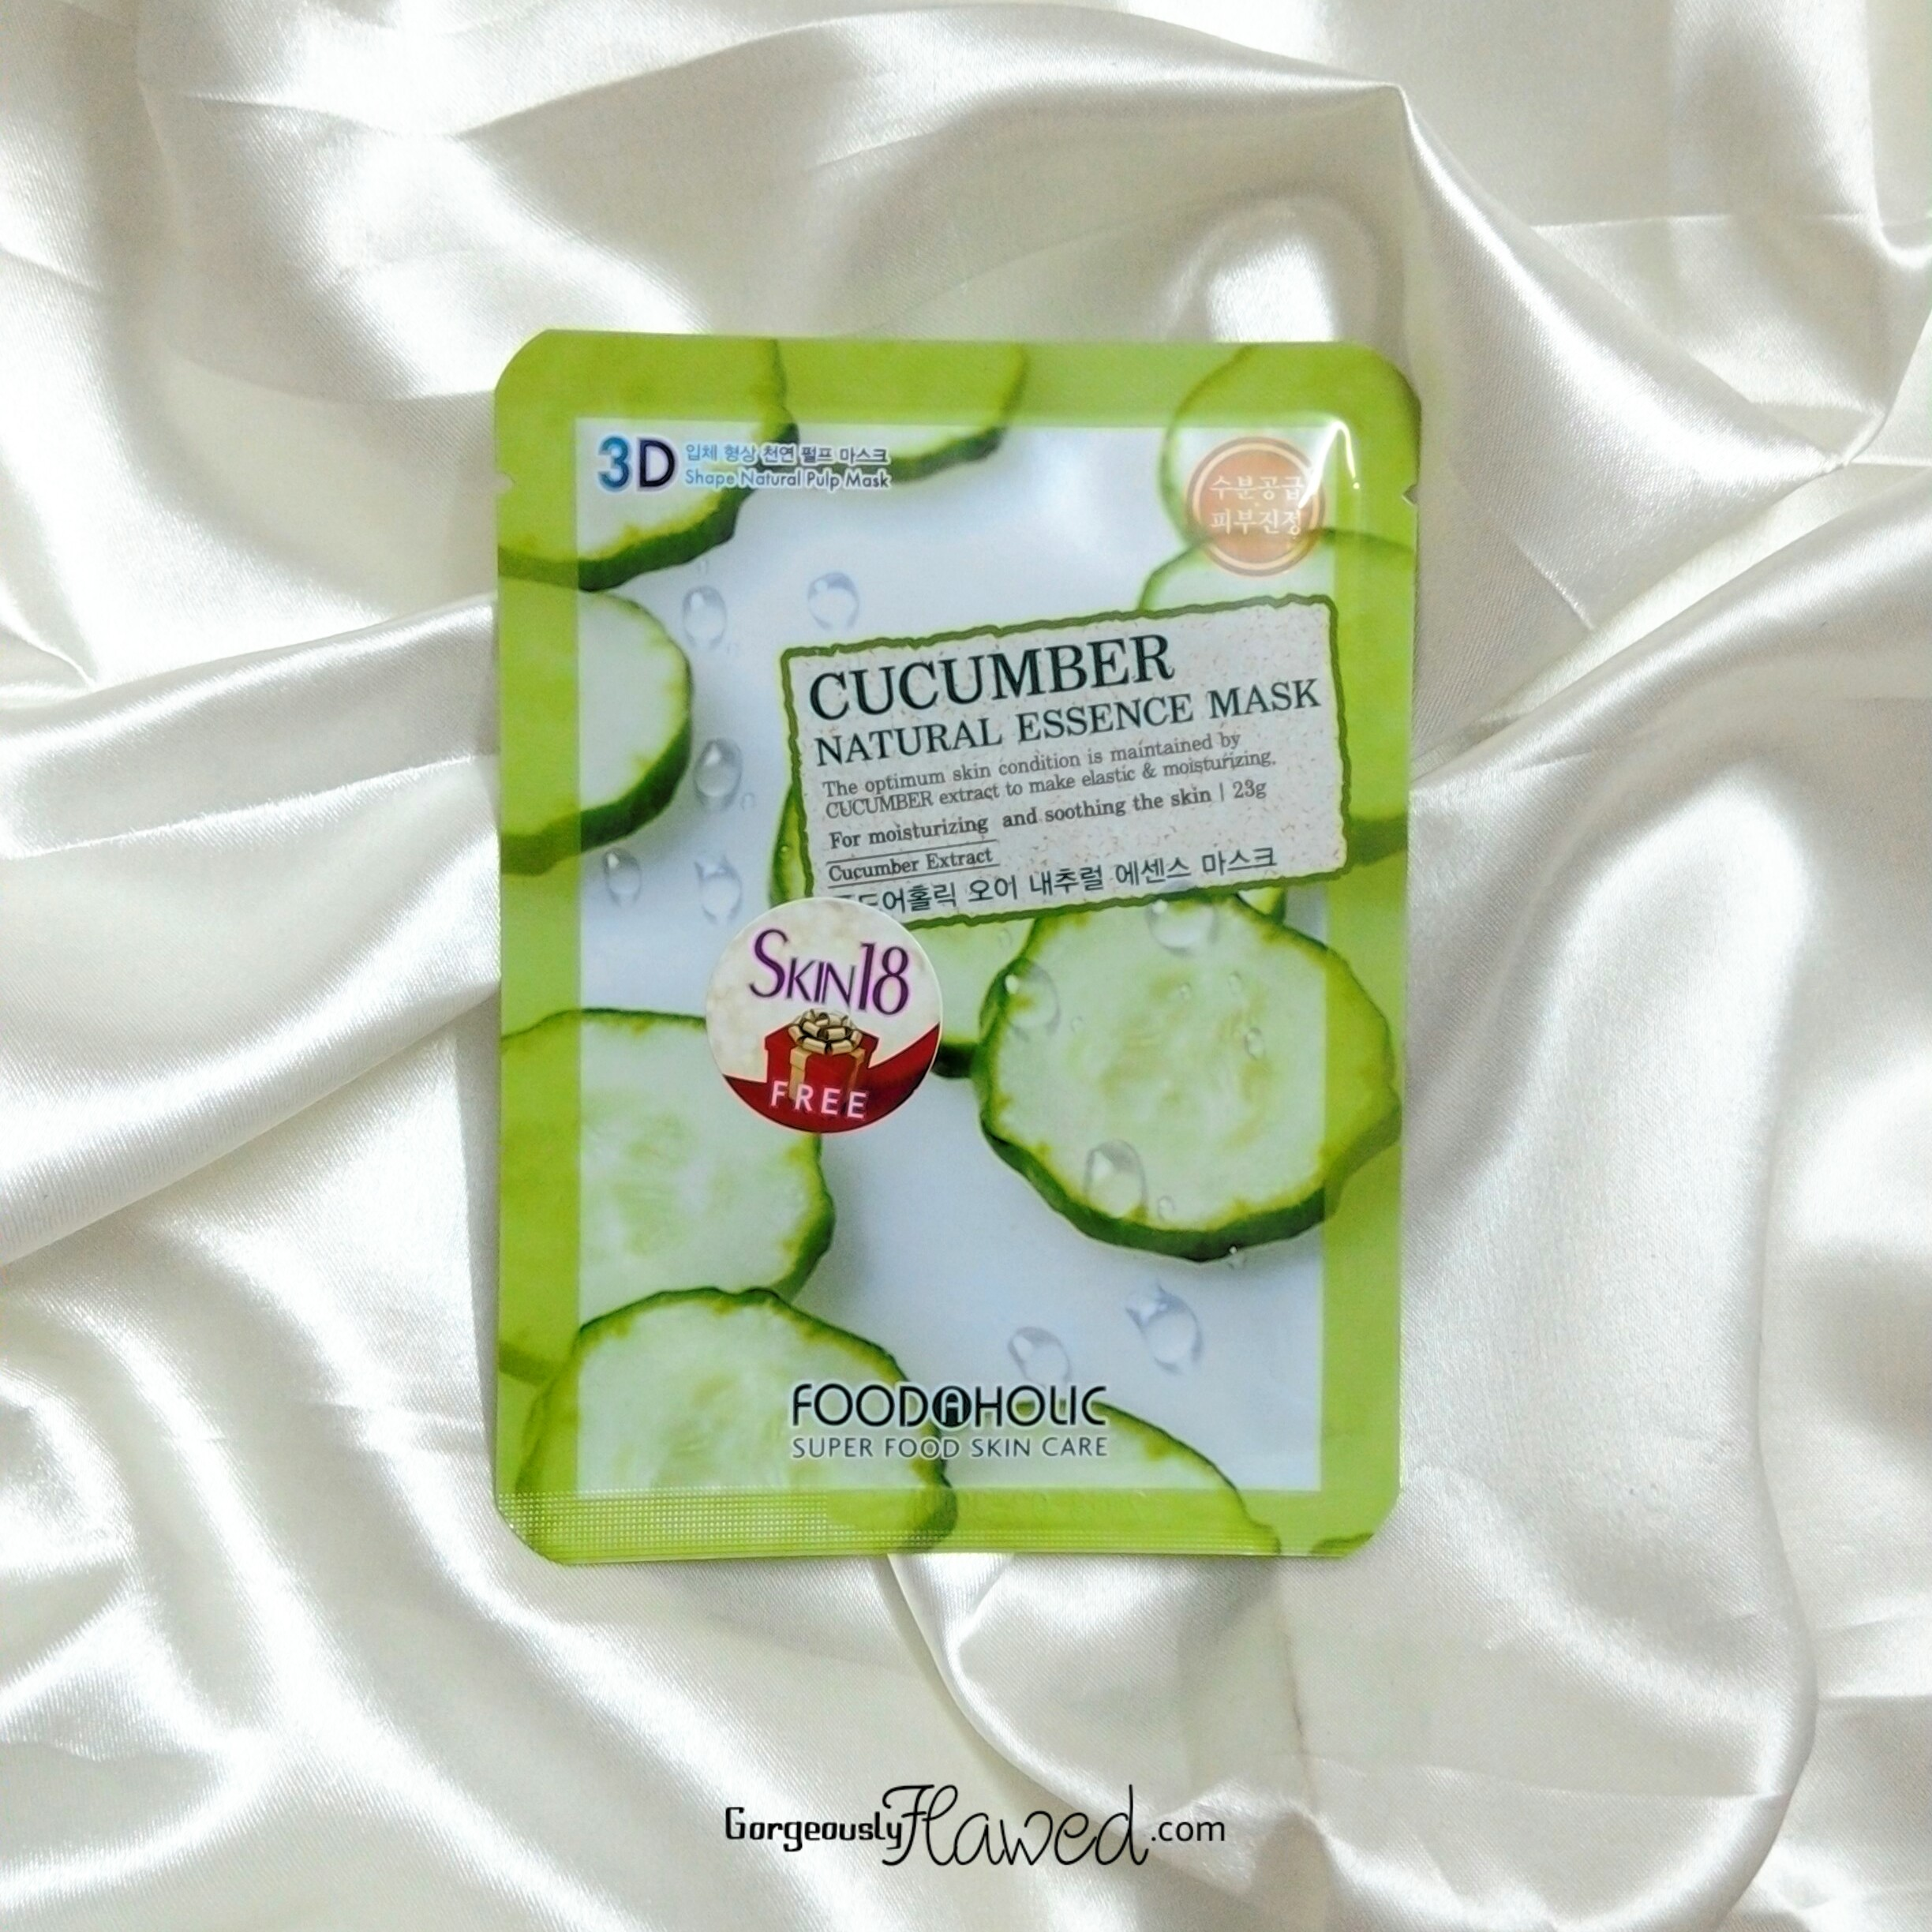 Foodaholic 3D Cucumber Natural Essence Mask Review